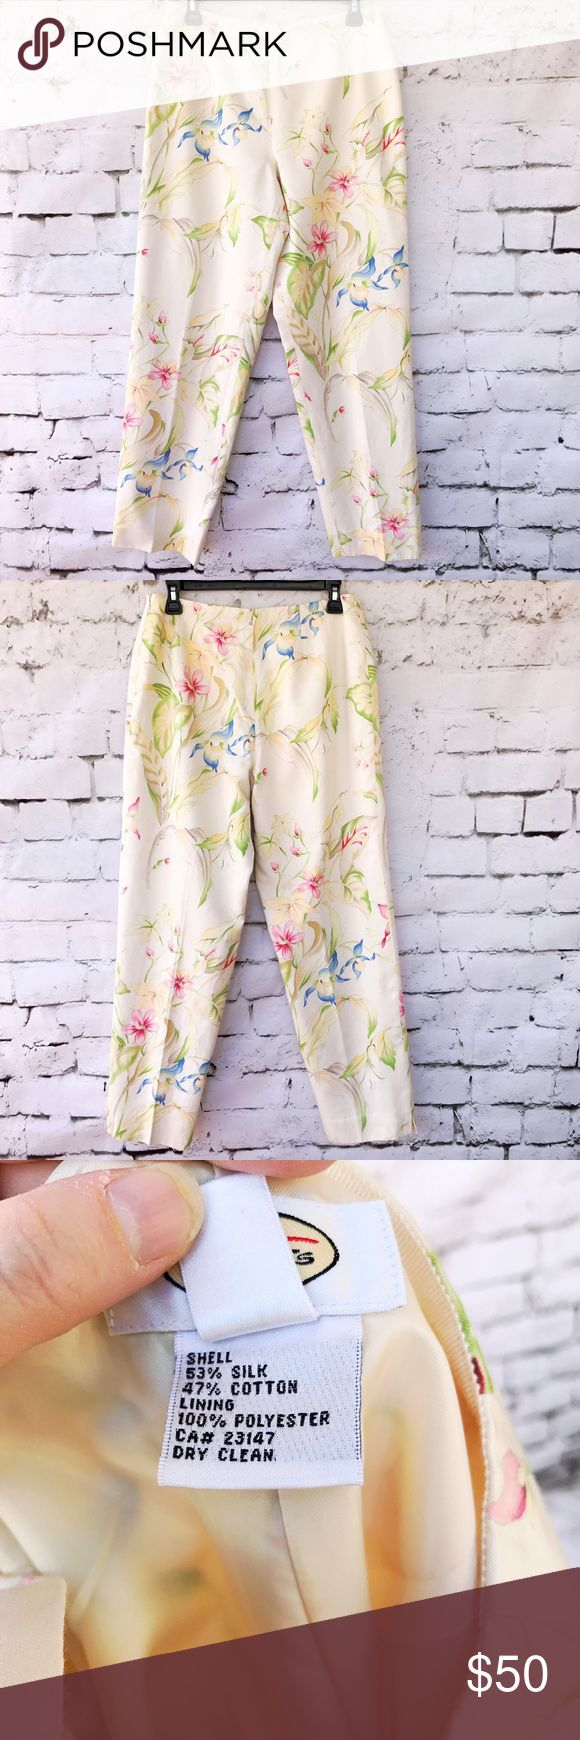 Talbots Silk Dressy Cream Floral Pants This item is used however it has no known flaws, rips (with the exception of one pin hole on right leg) or stains.  Please see pictures for material and measurements.  Welcome to make an offer unless item says firm in title.  Has been discounted for pin hole. Talbots Pants